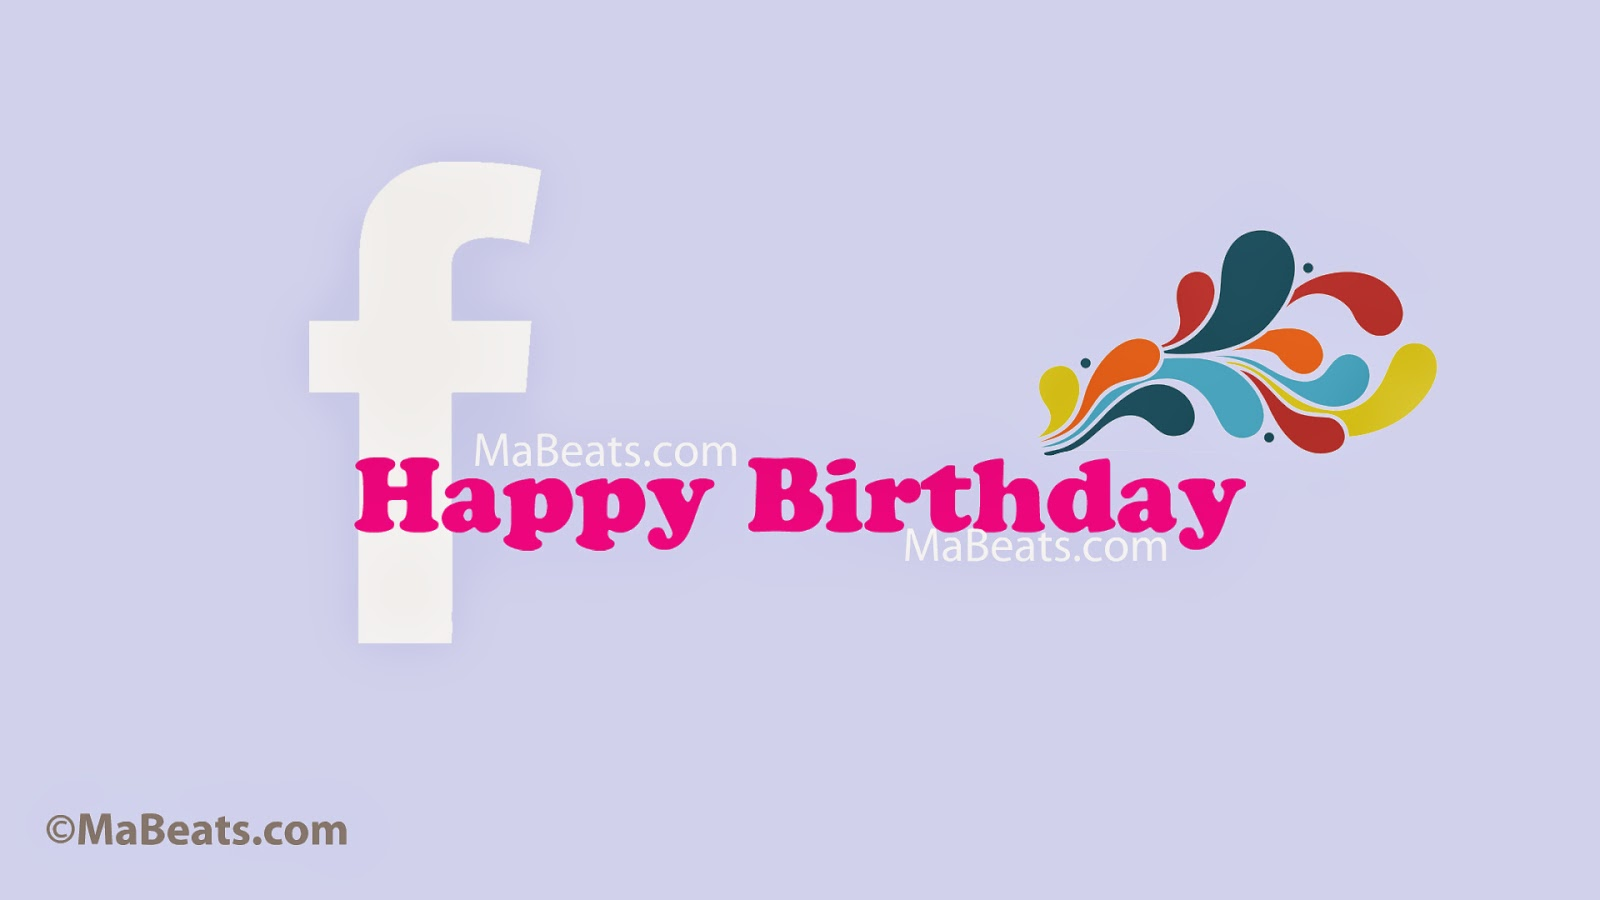 Facebook and birthdays - Being a Non wisher